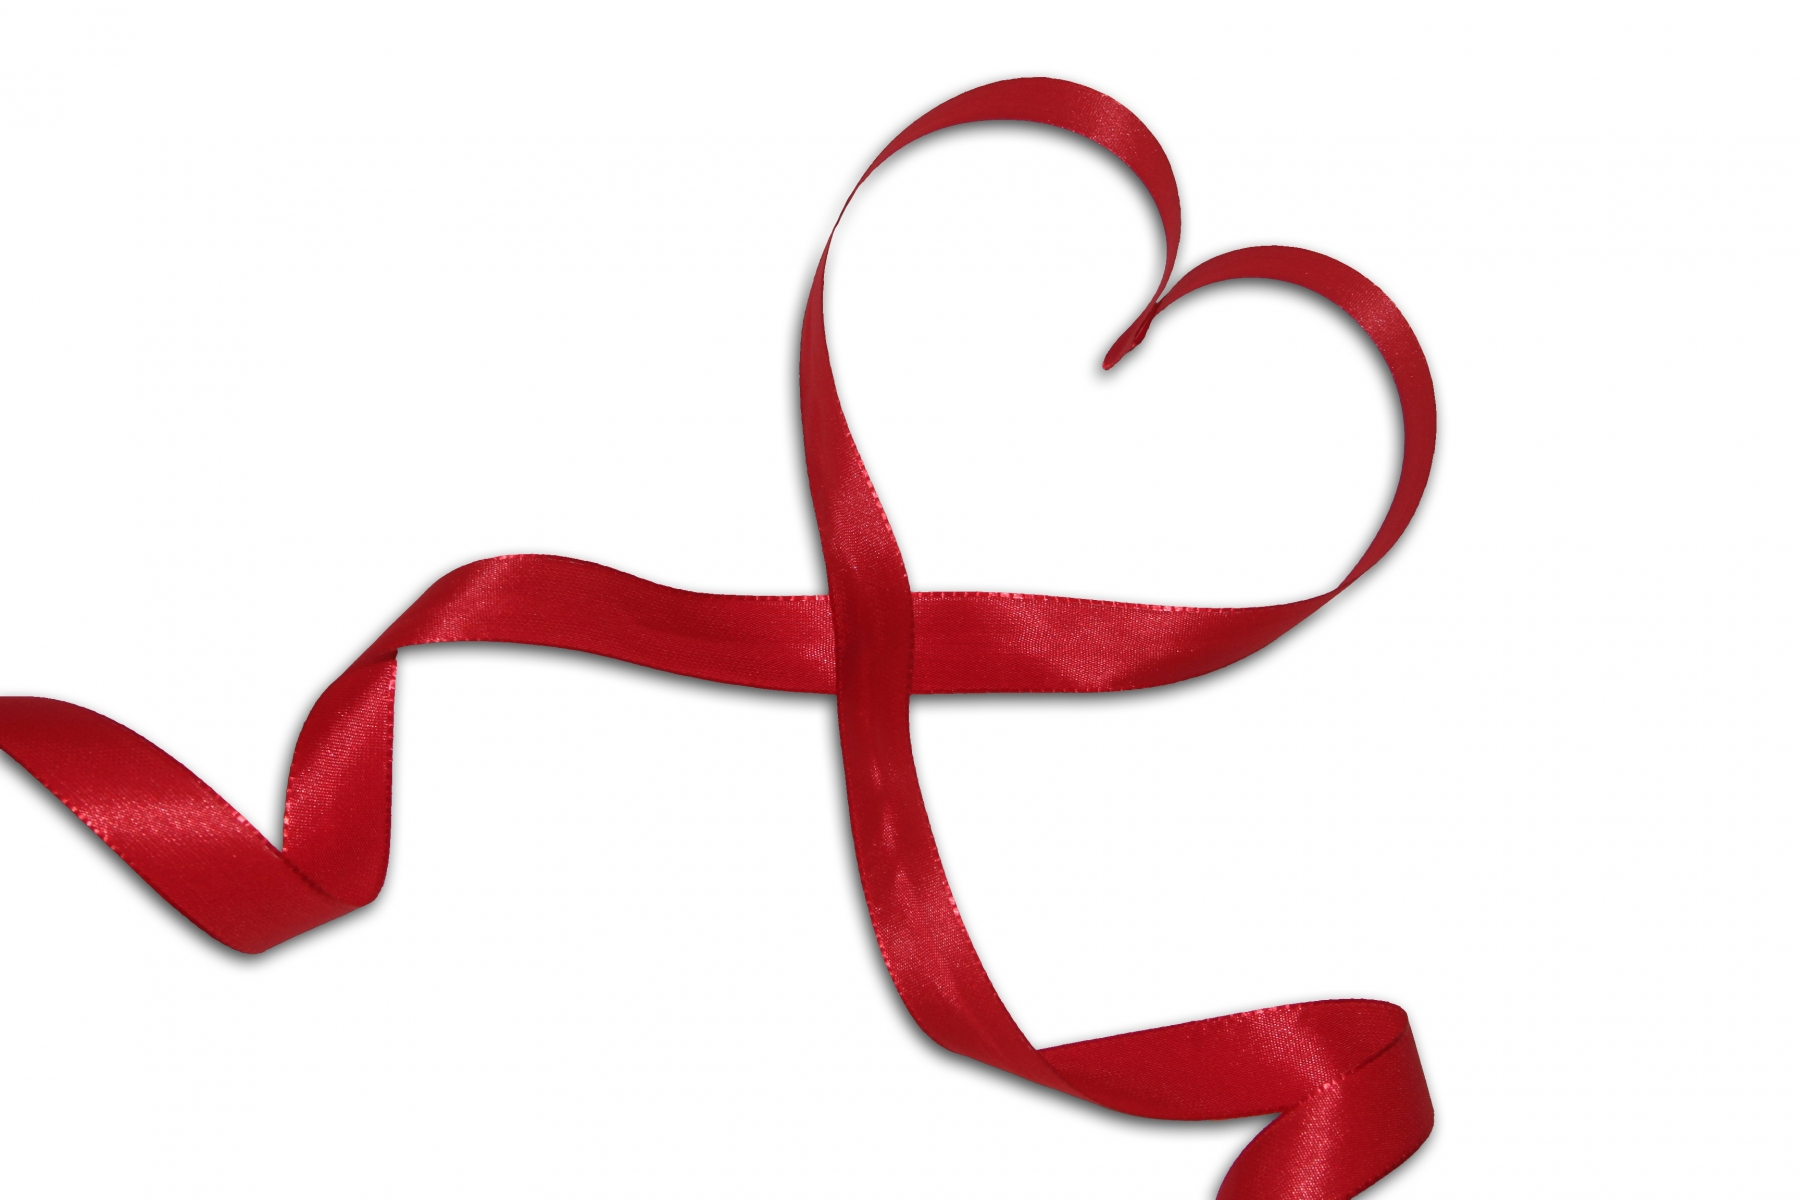 1184523-heart-of-a-red-bow